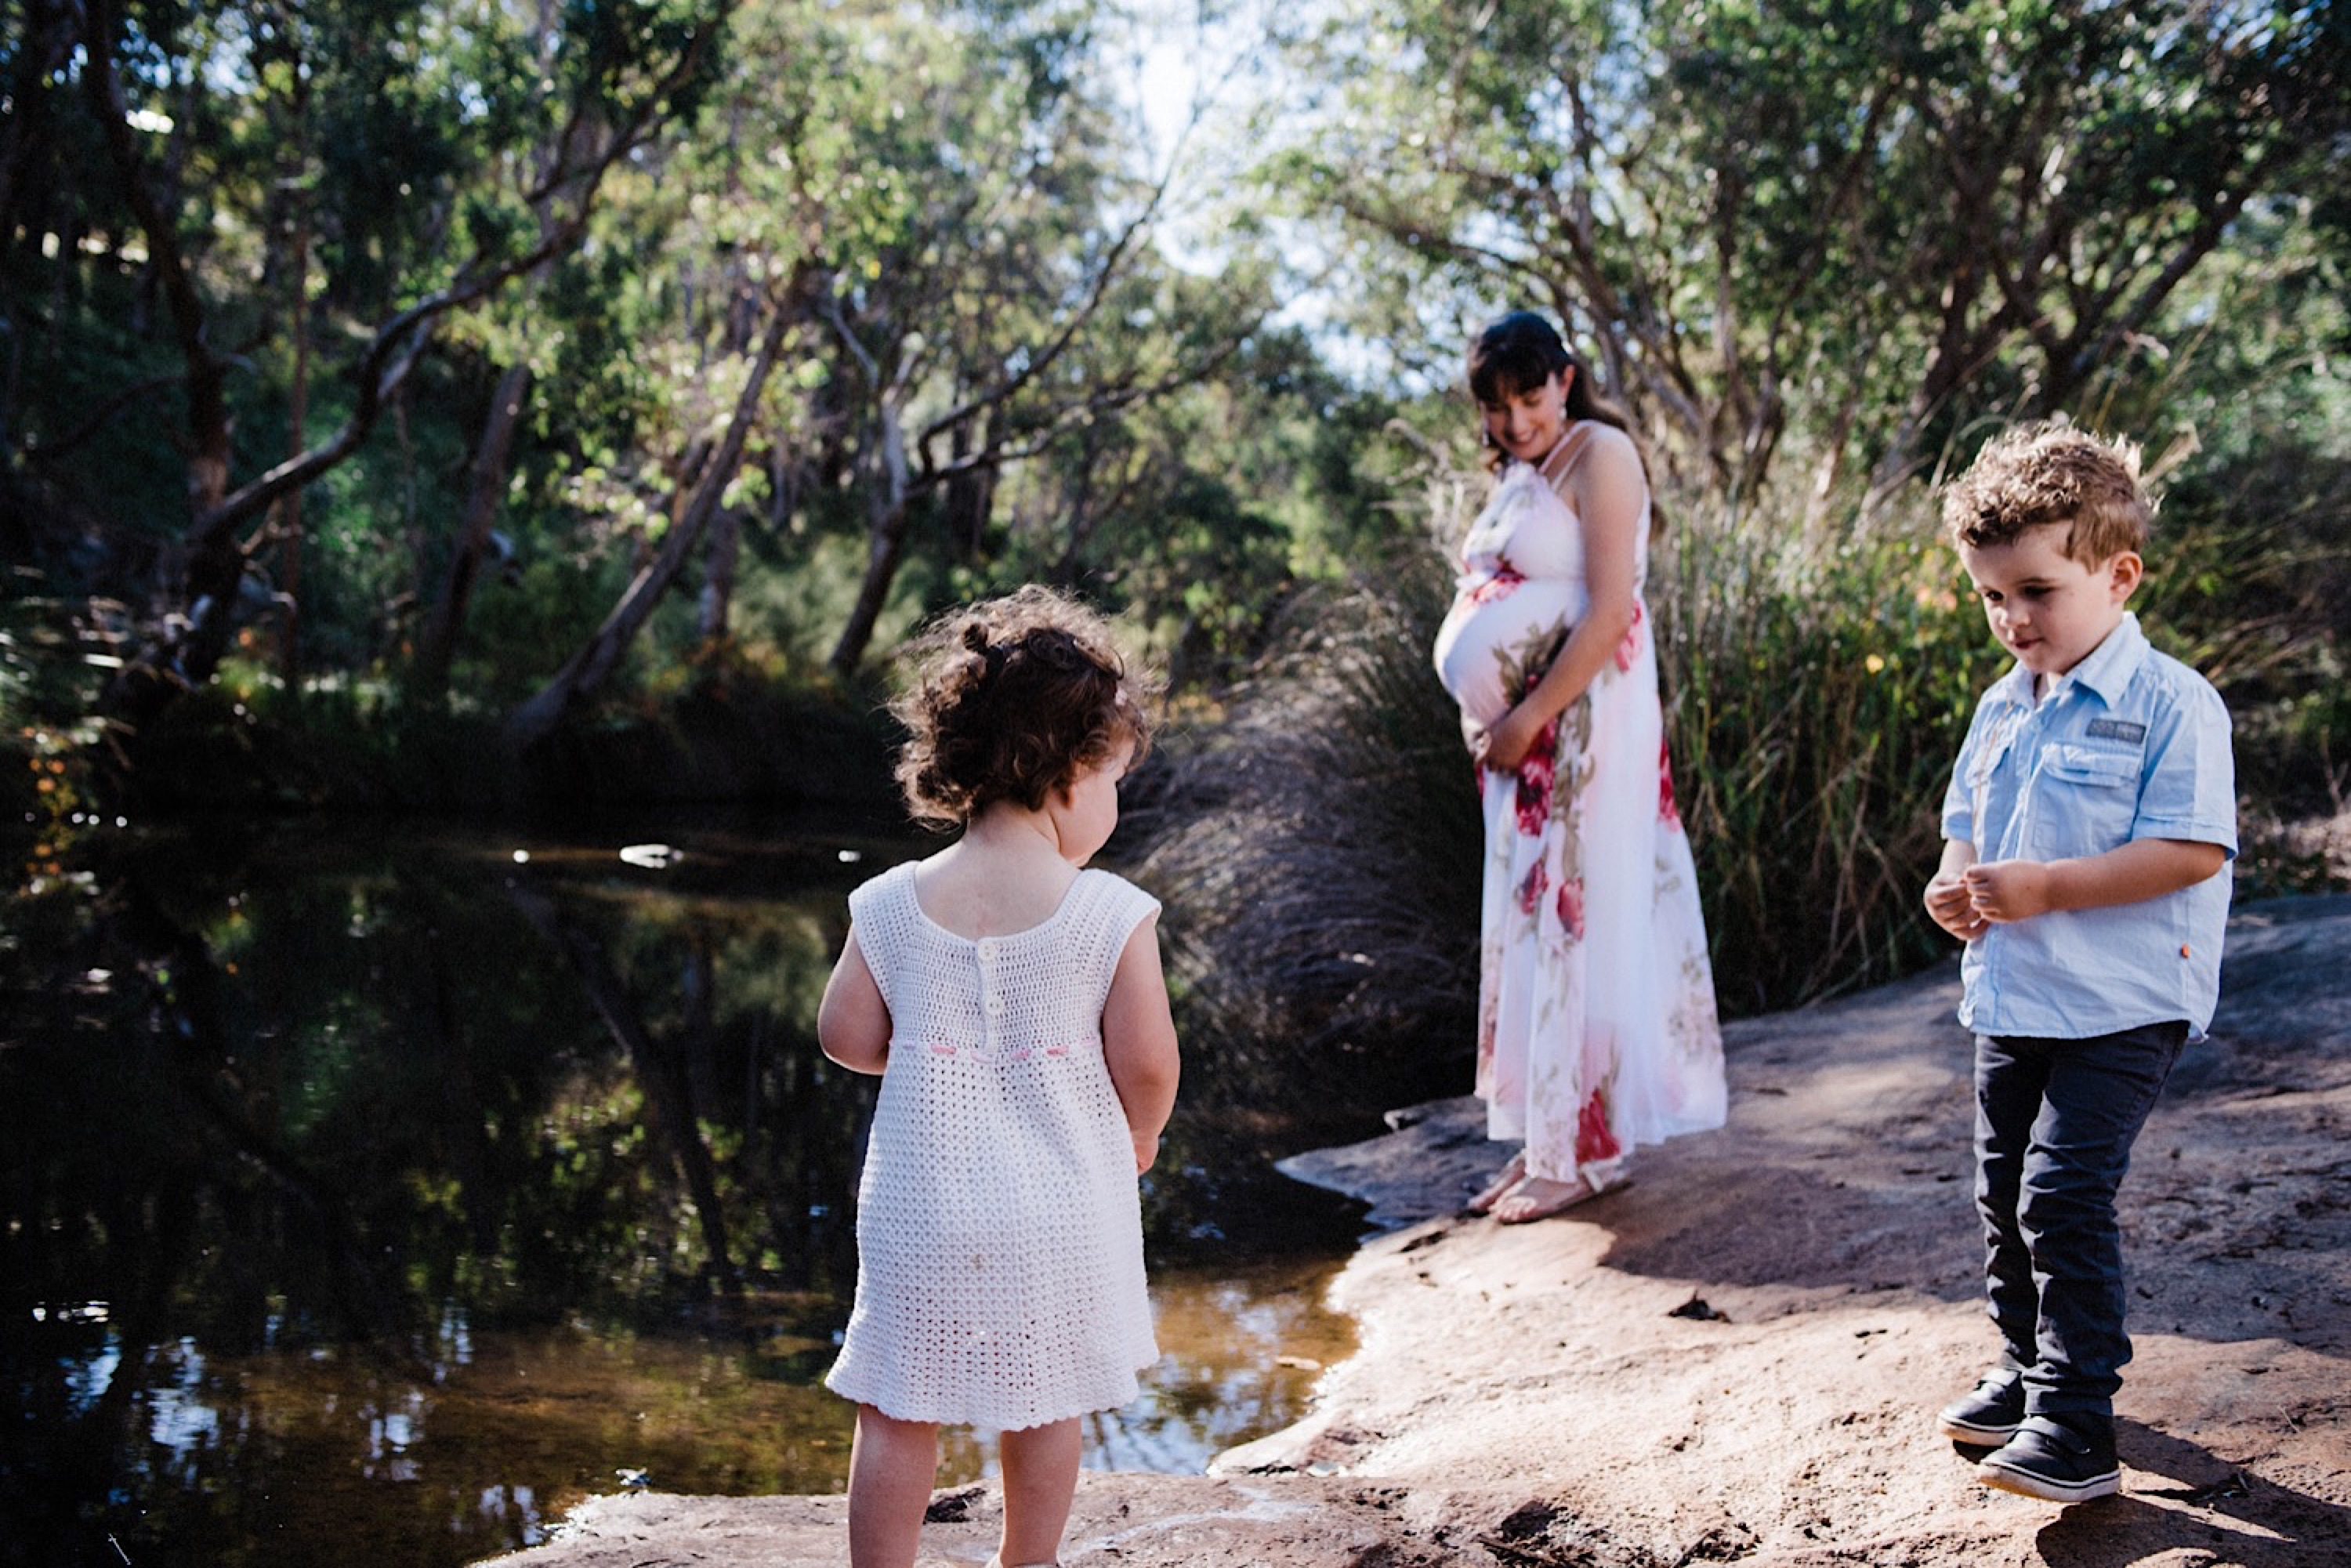 An authentic family photo of two young children standing by a creek with their Mum in the background.